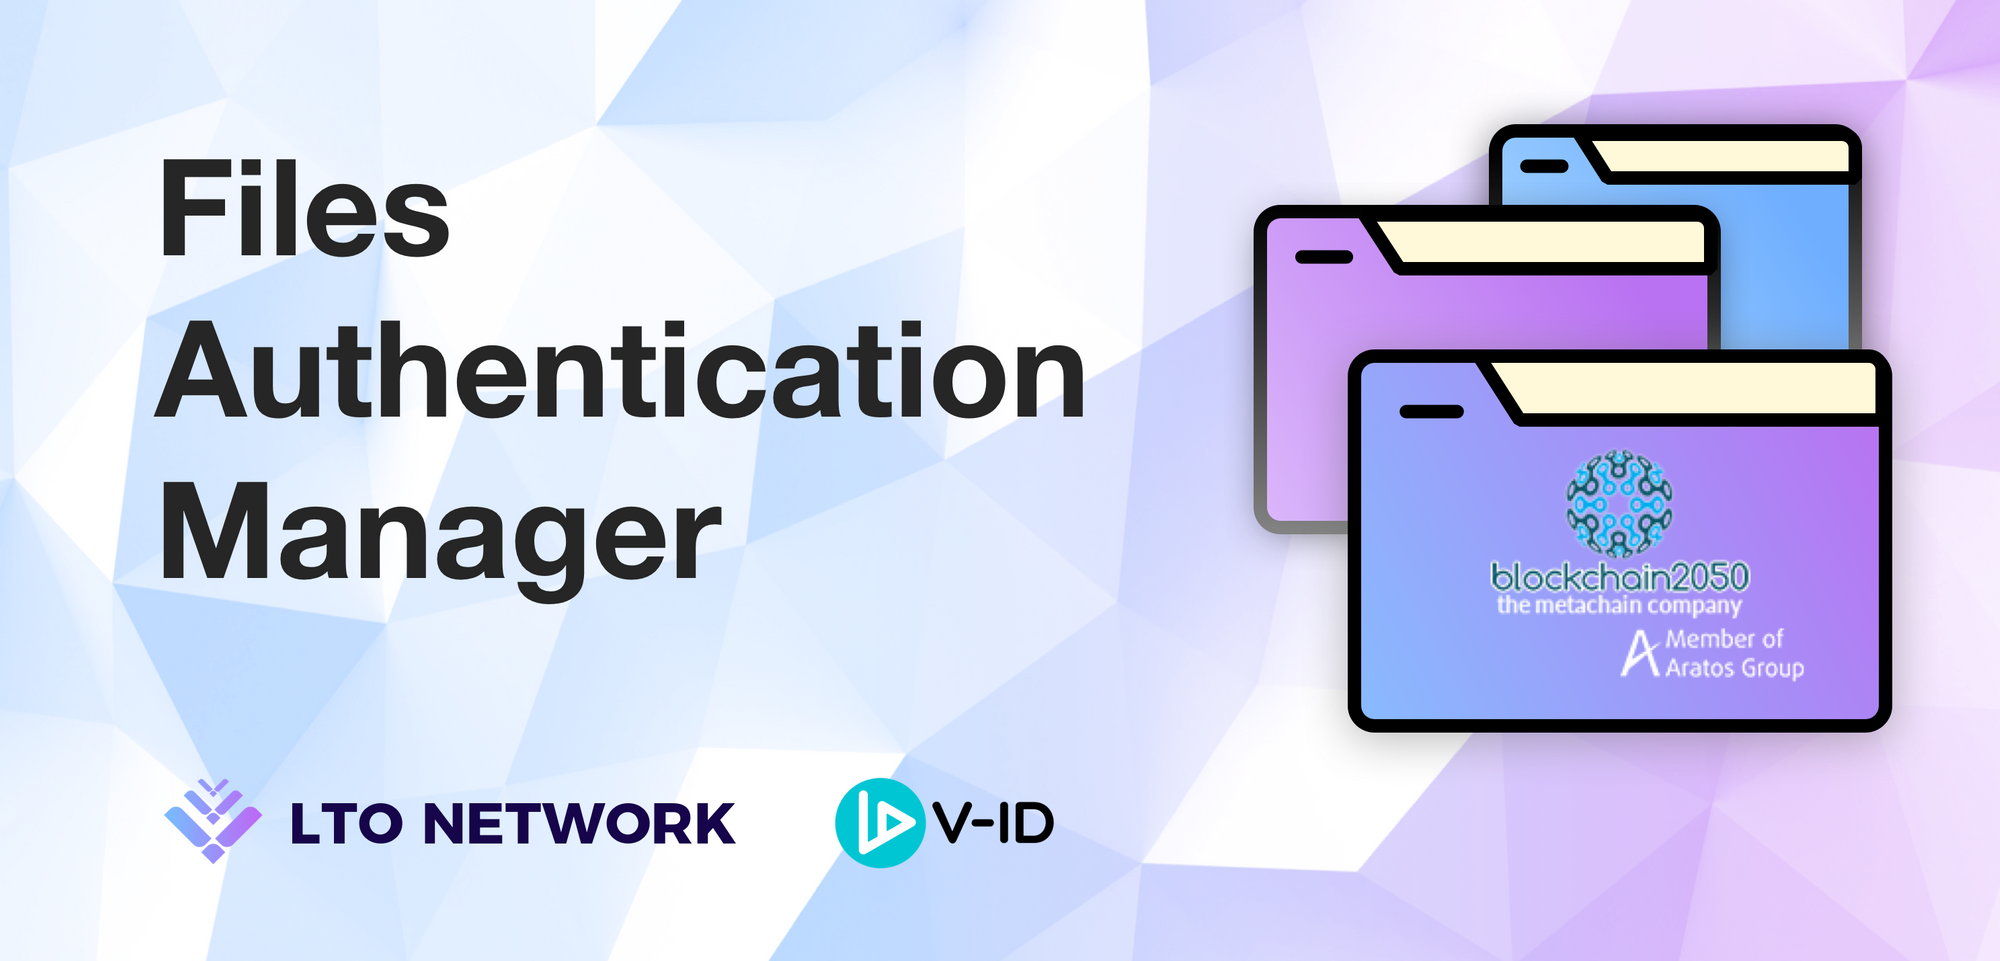 Files Authentication Manager for European Municipality